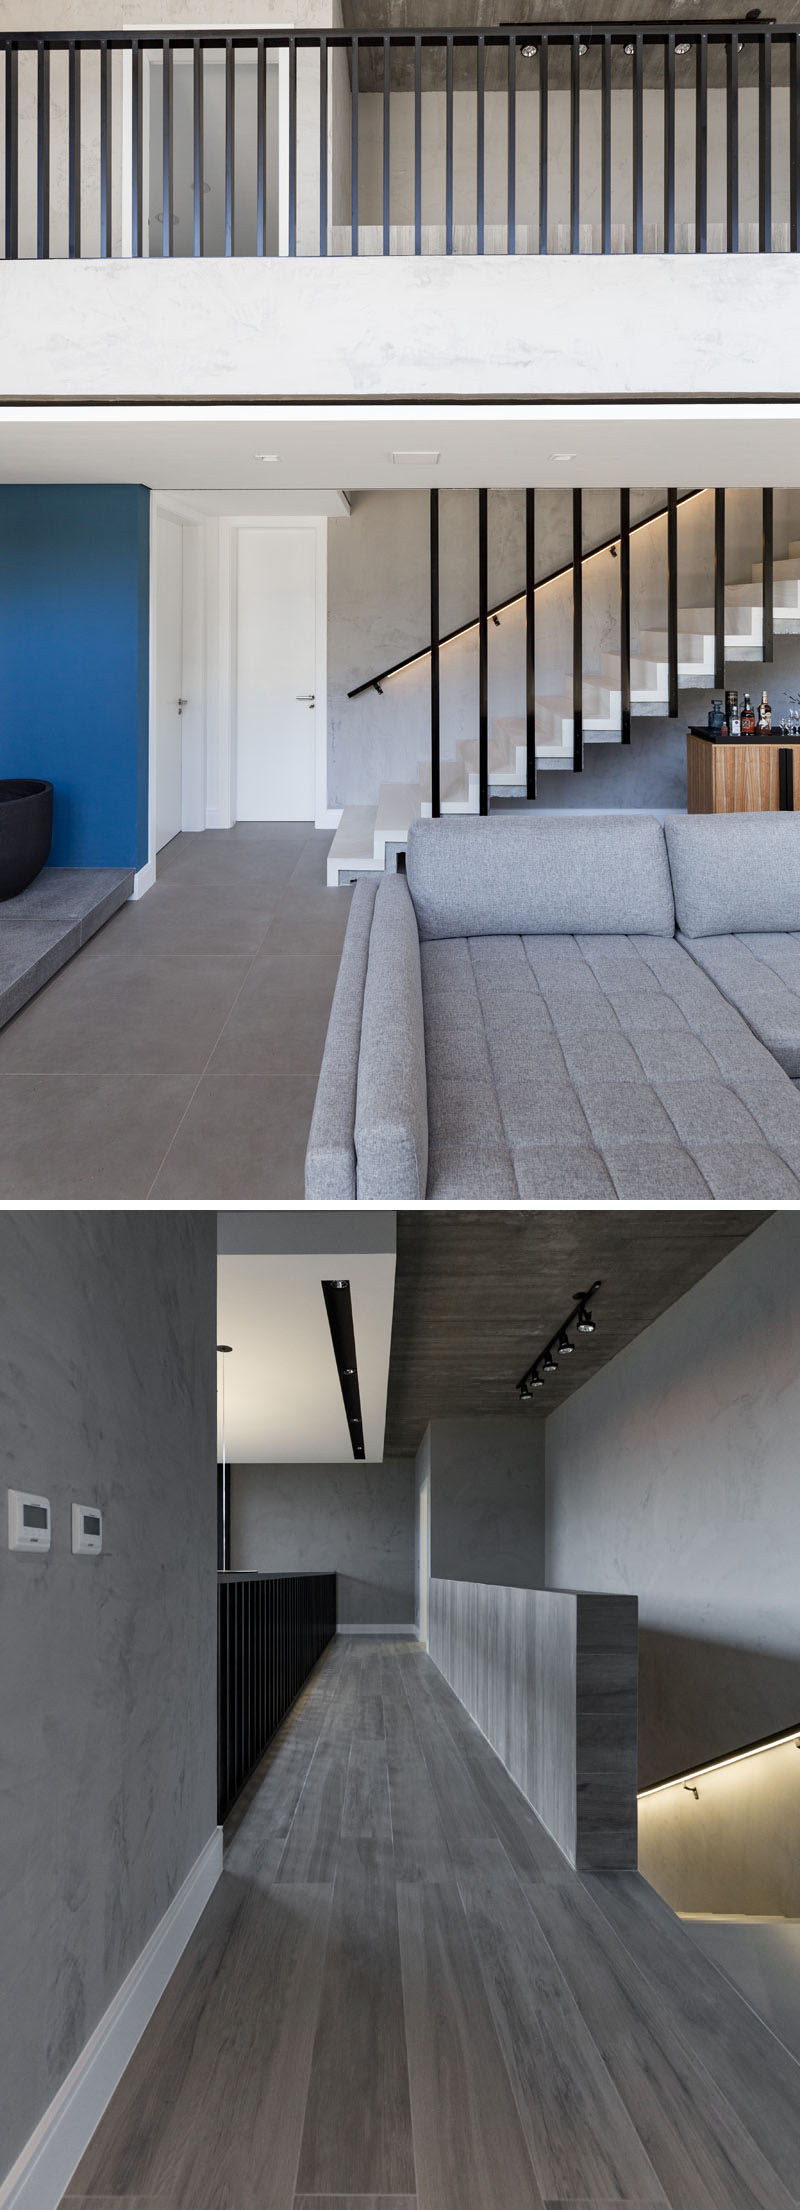 Stairs leading up to the upper floor of this modern house have a handrail with hidden lighting, and at the top of the stairs, a bridge walkway to the bedrooms overlooks the living room below. #ModernStairs #Handrail